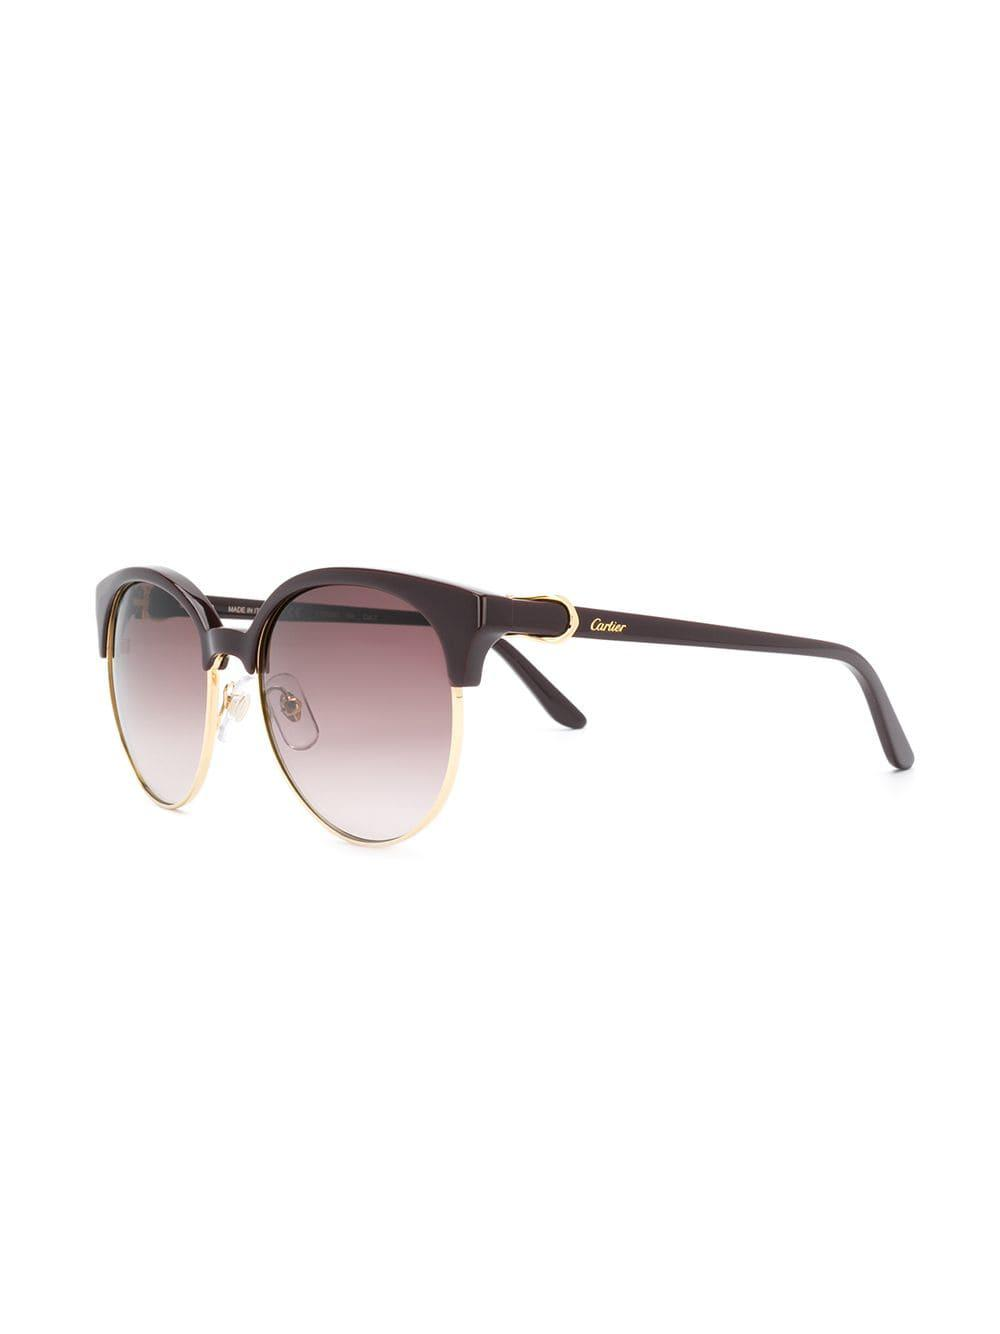 Cartier C Decor Sunglasses In Red Lyst